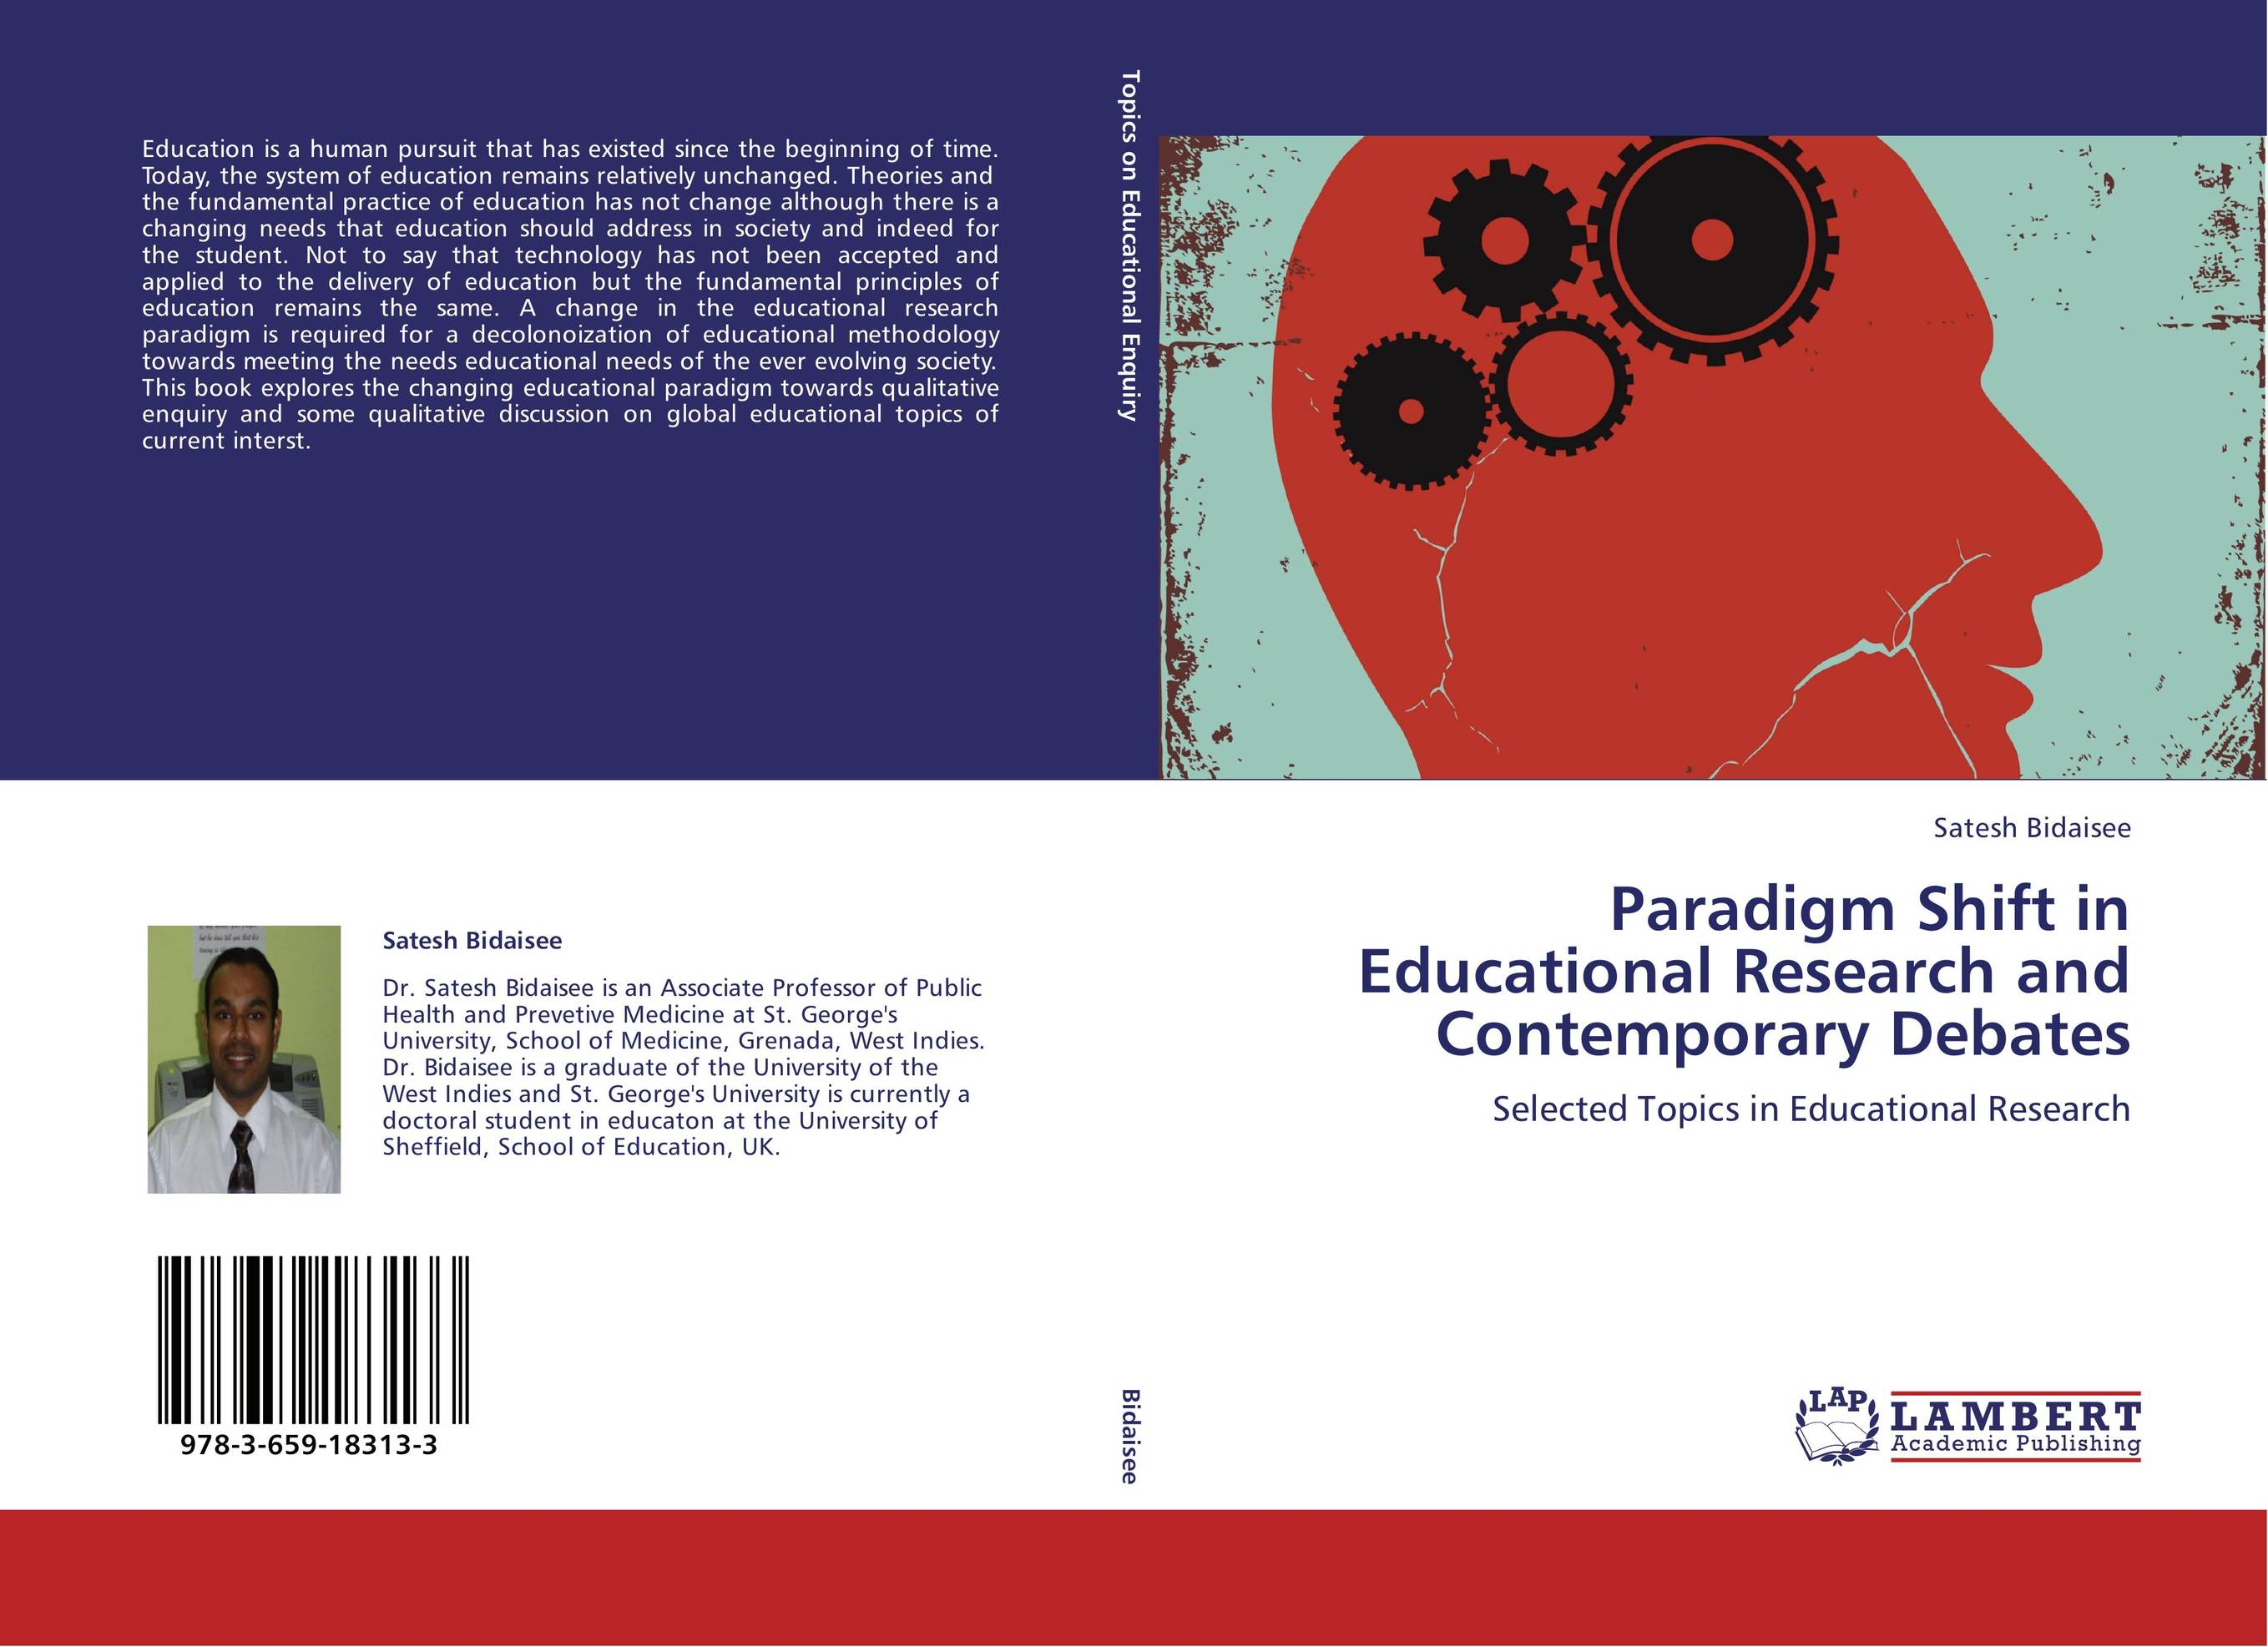 paradigm in research 3 orientation braa & vidgen (1999) is a typical example of researchers who talk about action and change oriented research without explicitly locating it within a pragmatist paradigm.